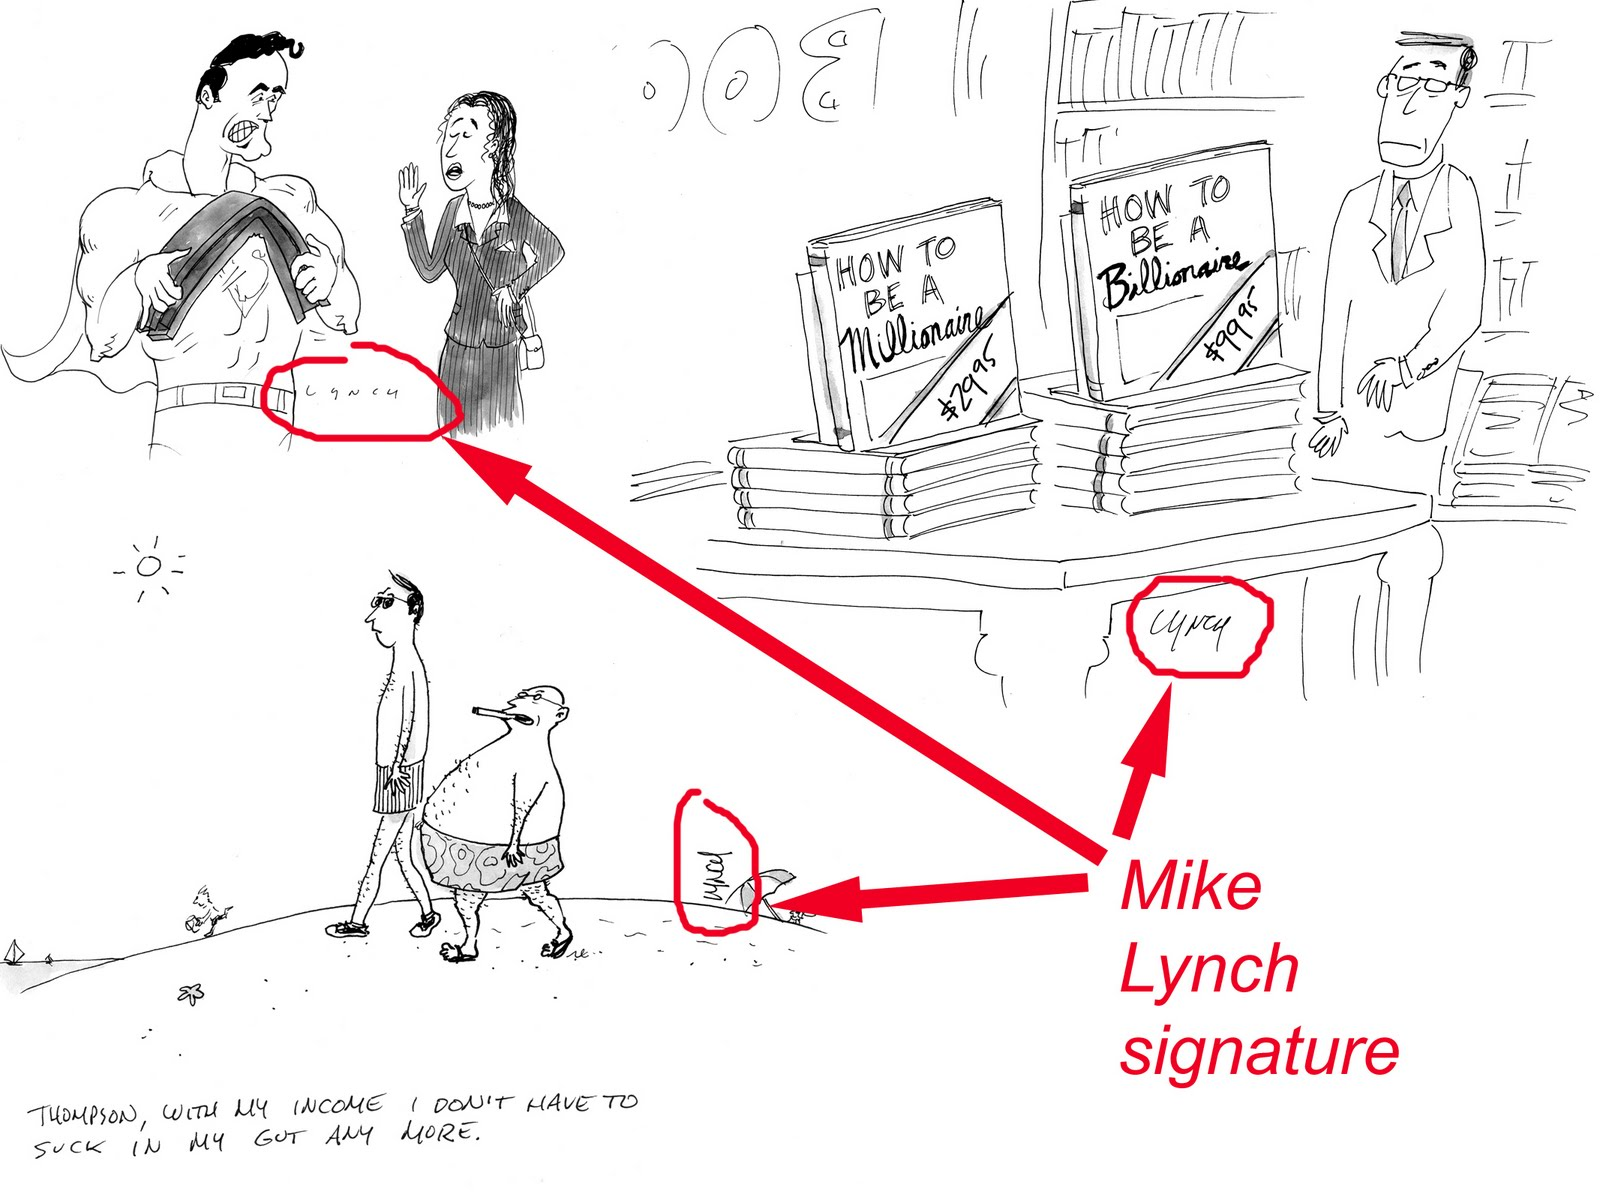 Mike Lynch Cartoons: The Business of Cartooning: Your Signature